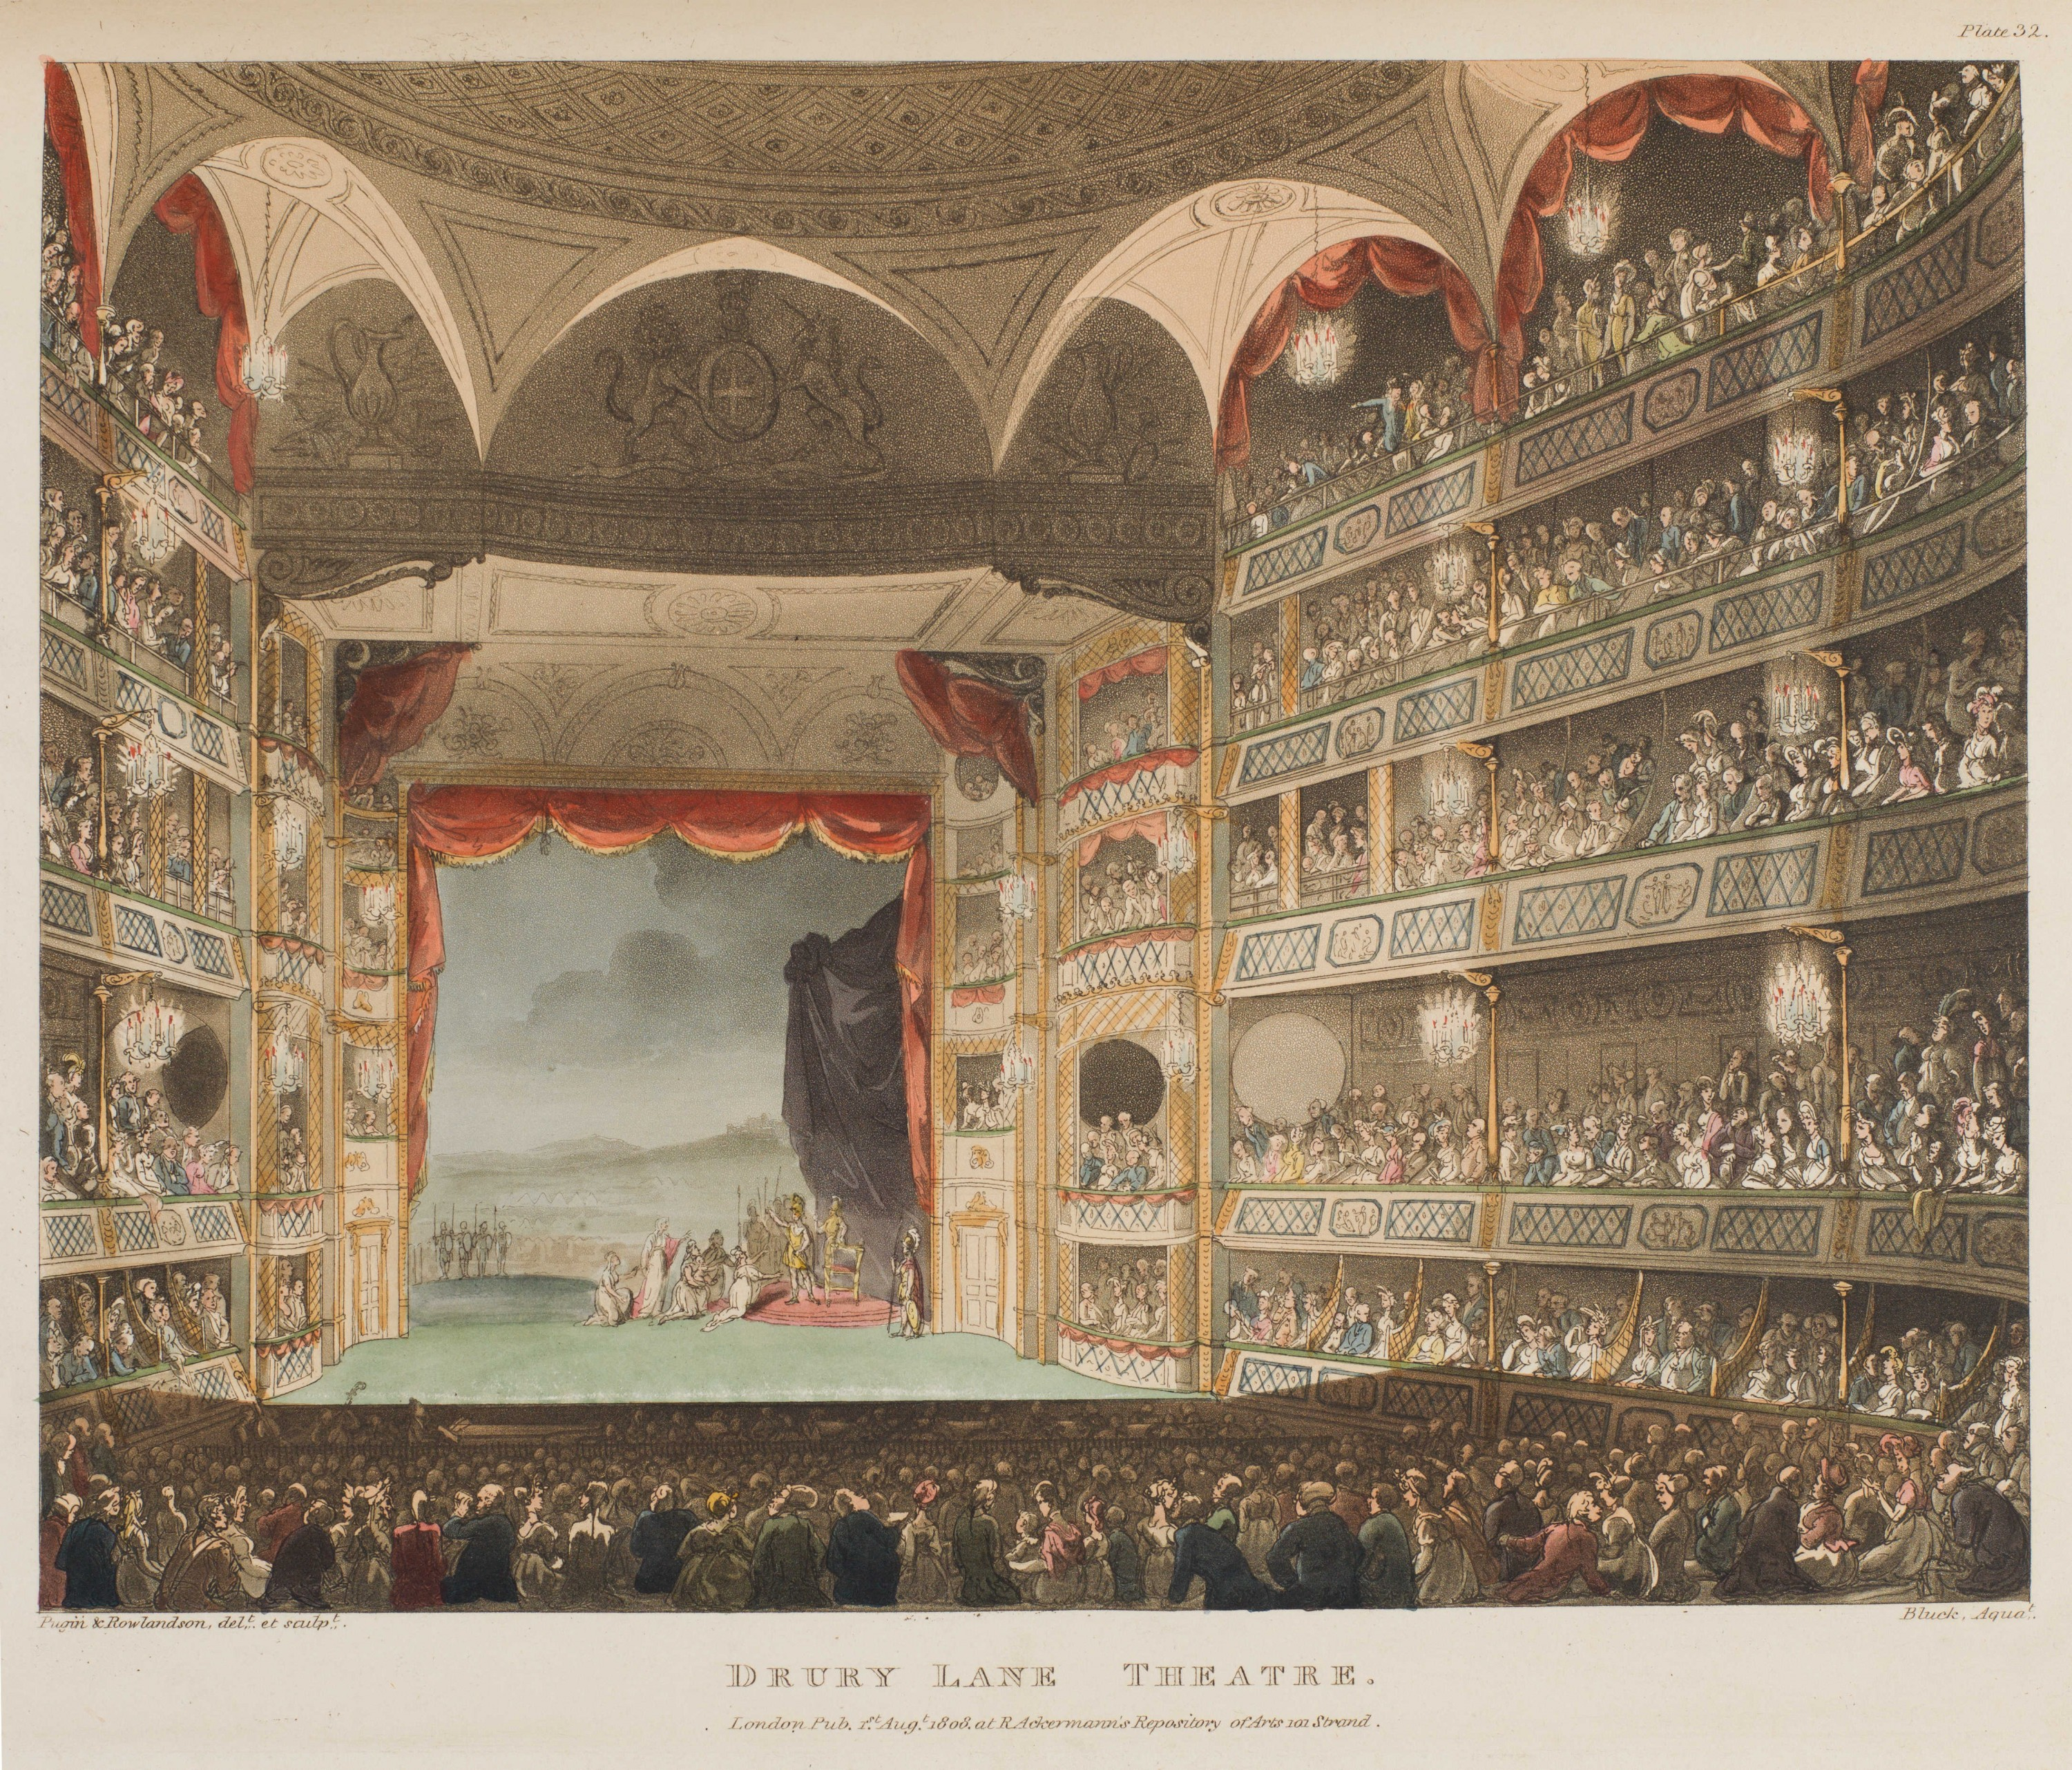 032 - Drury Lane Theatre